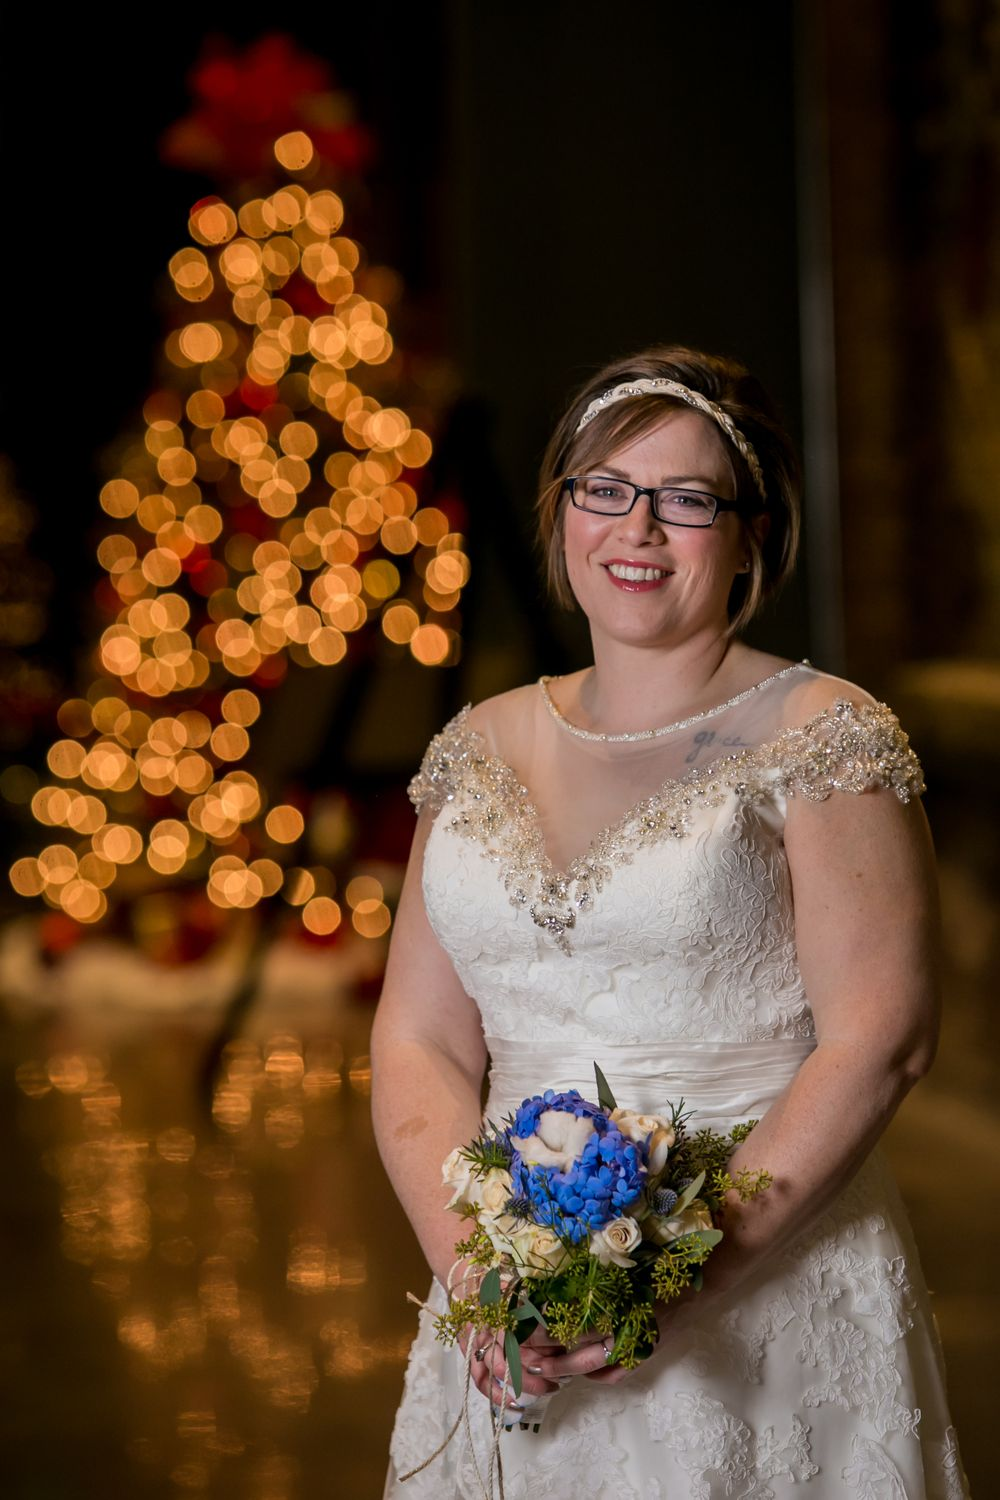 Bride Brooke poses in front of a Christmas tree before her wedding at the South Carolina State Museum in Columbia, SC